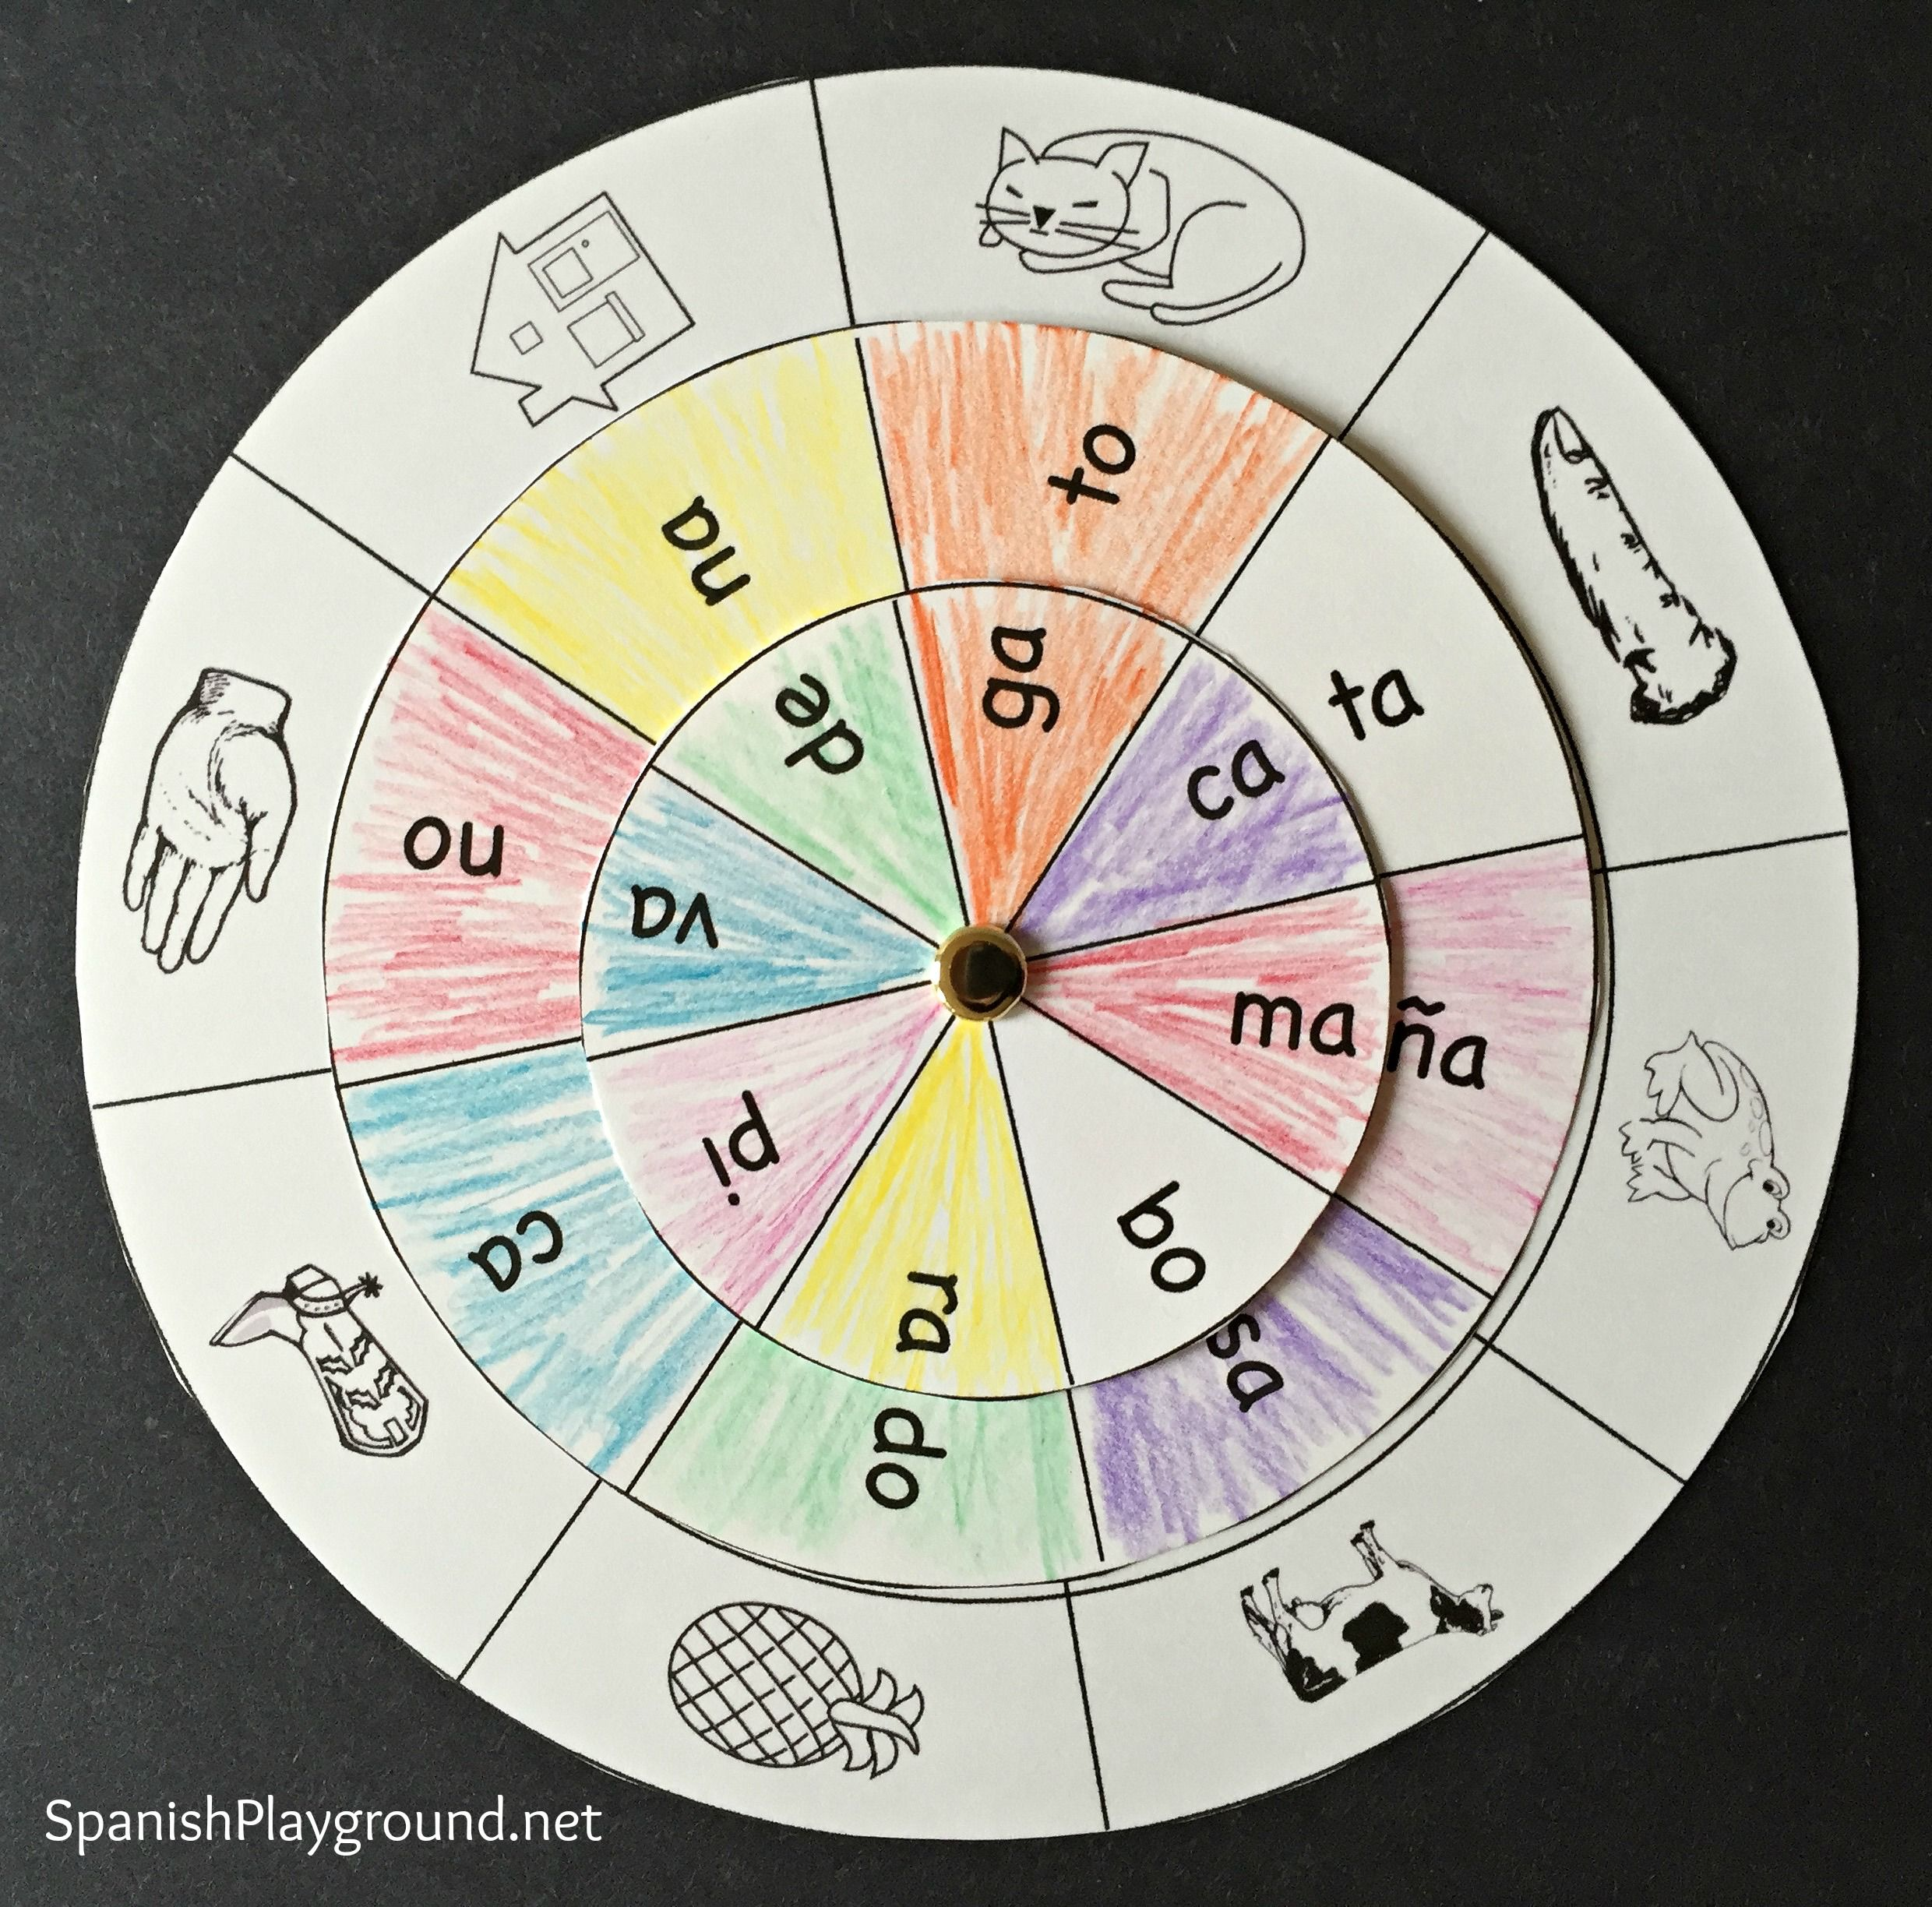 Spanish Syllables Printable Wheel